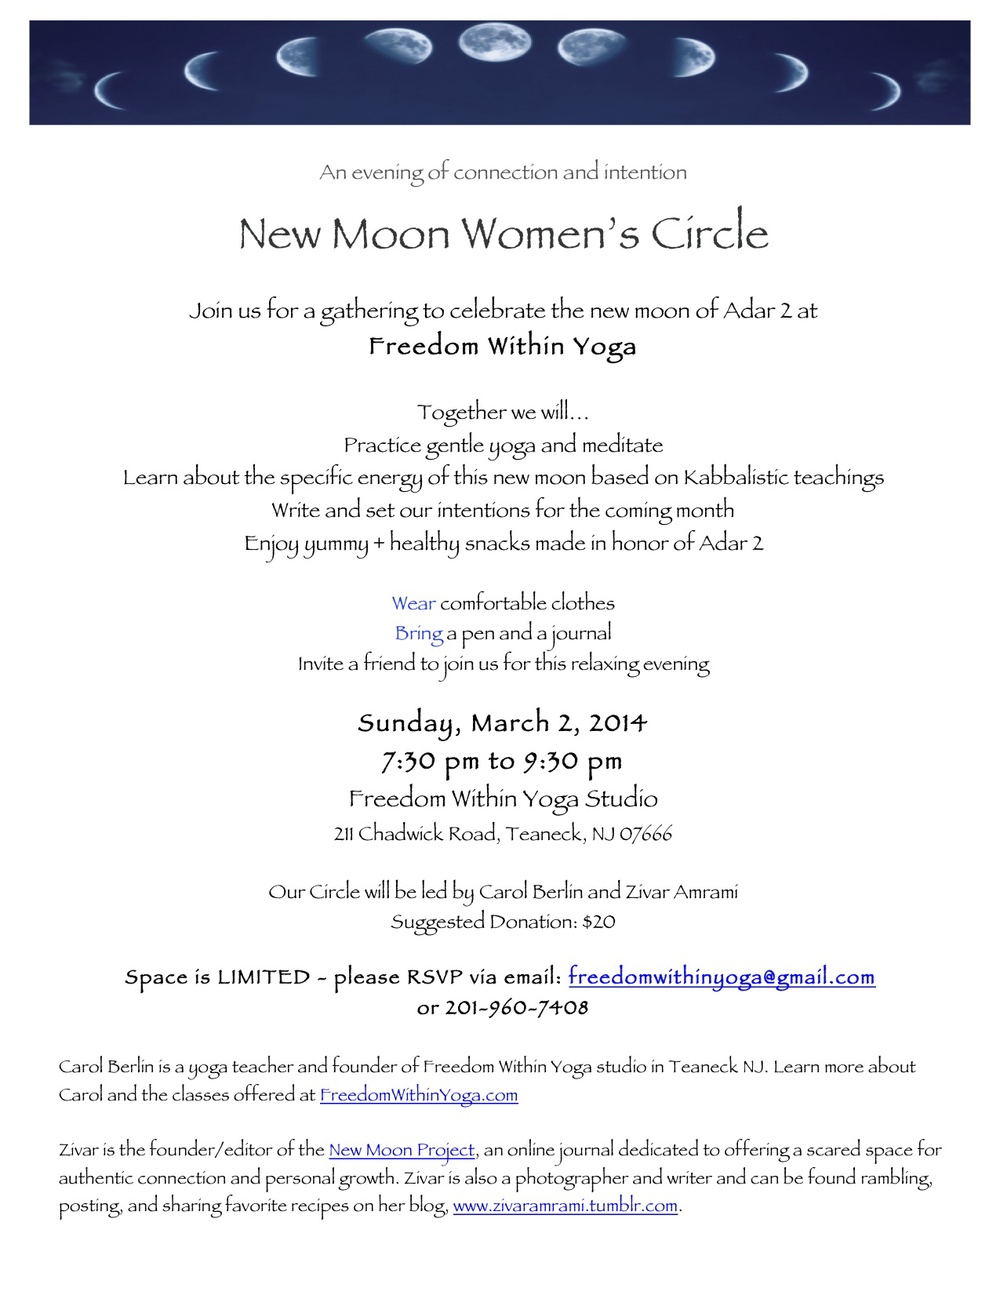 New Moon Updated 2.20.14 V2.jpg